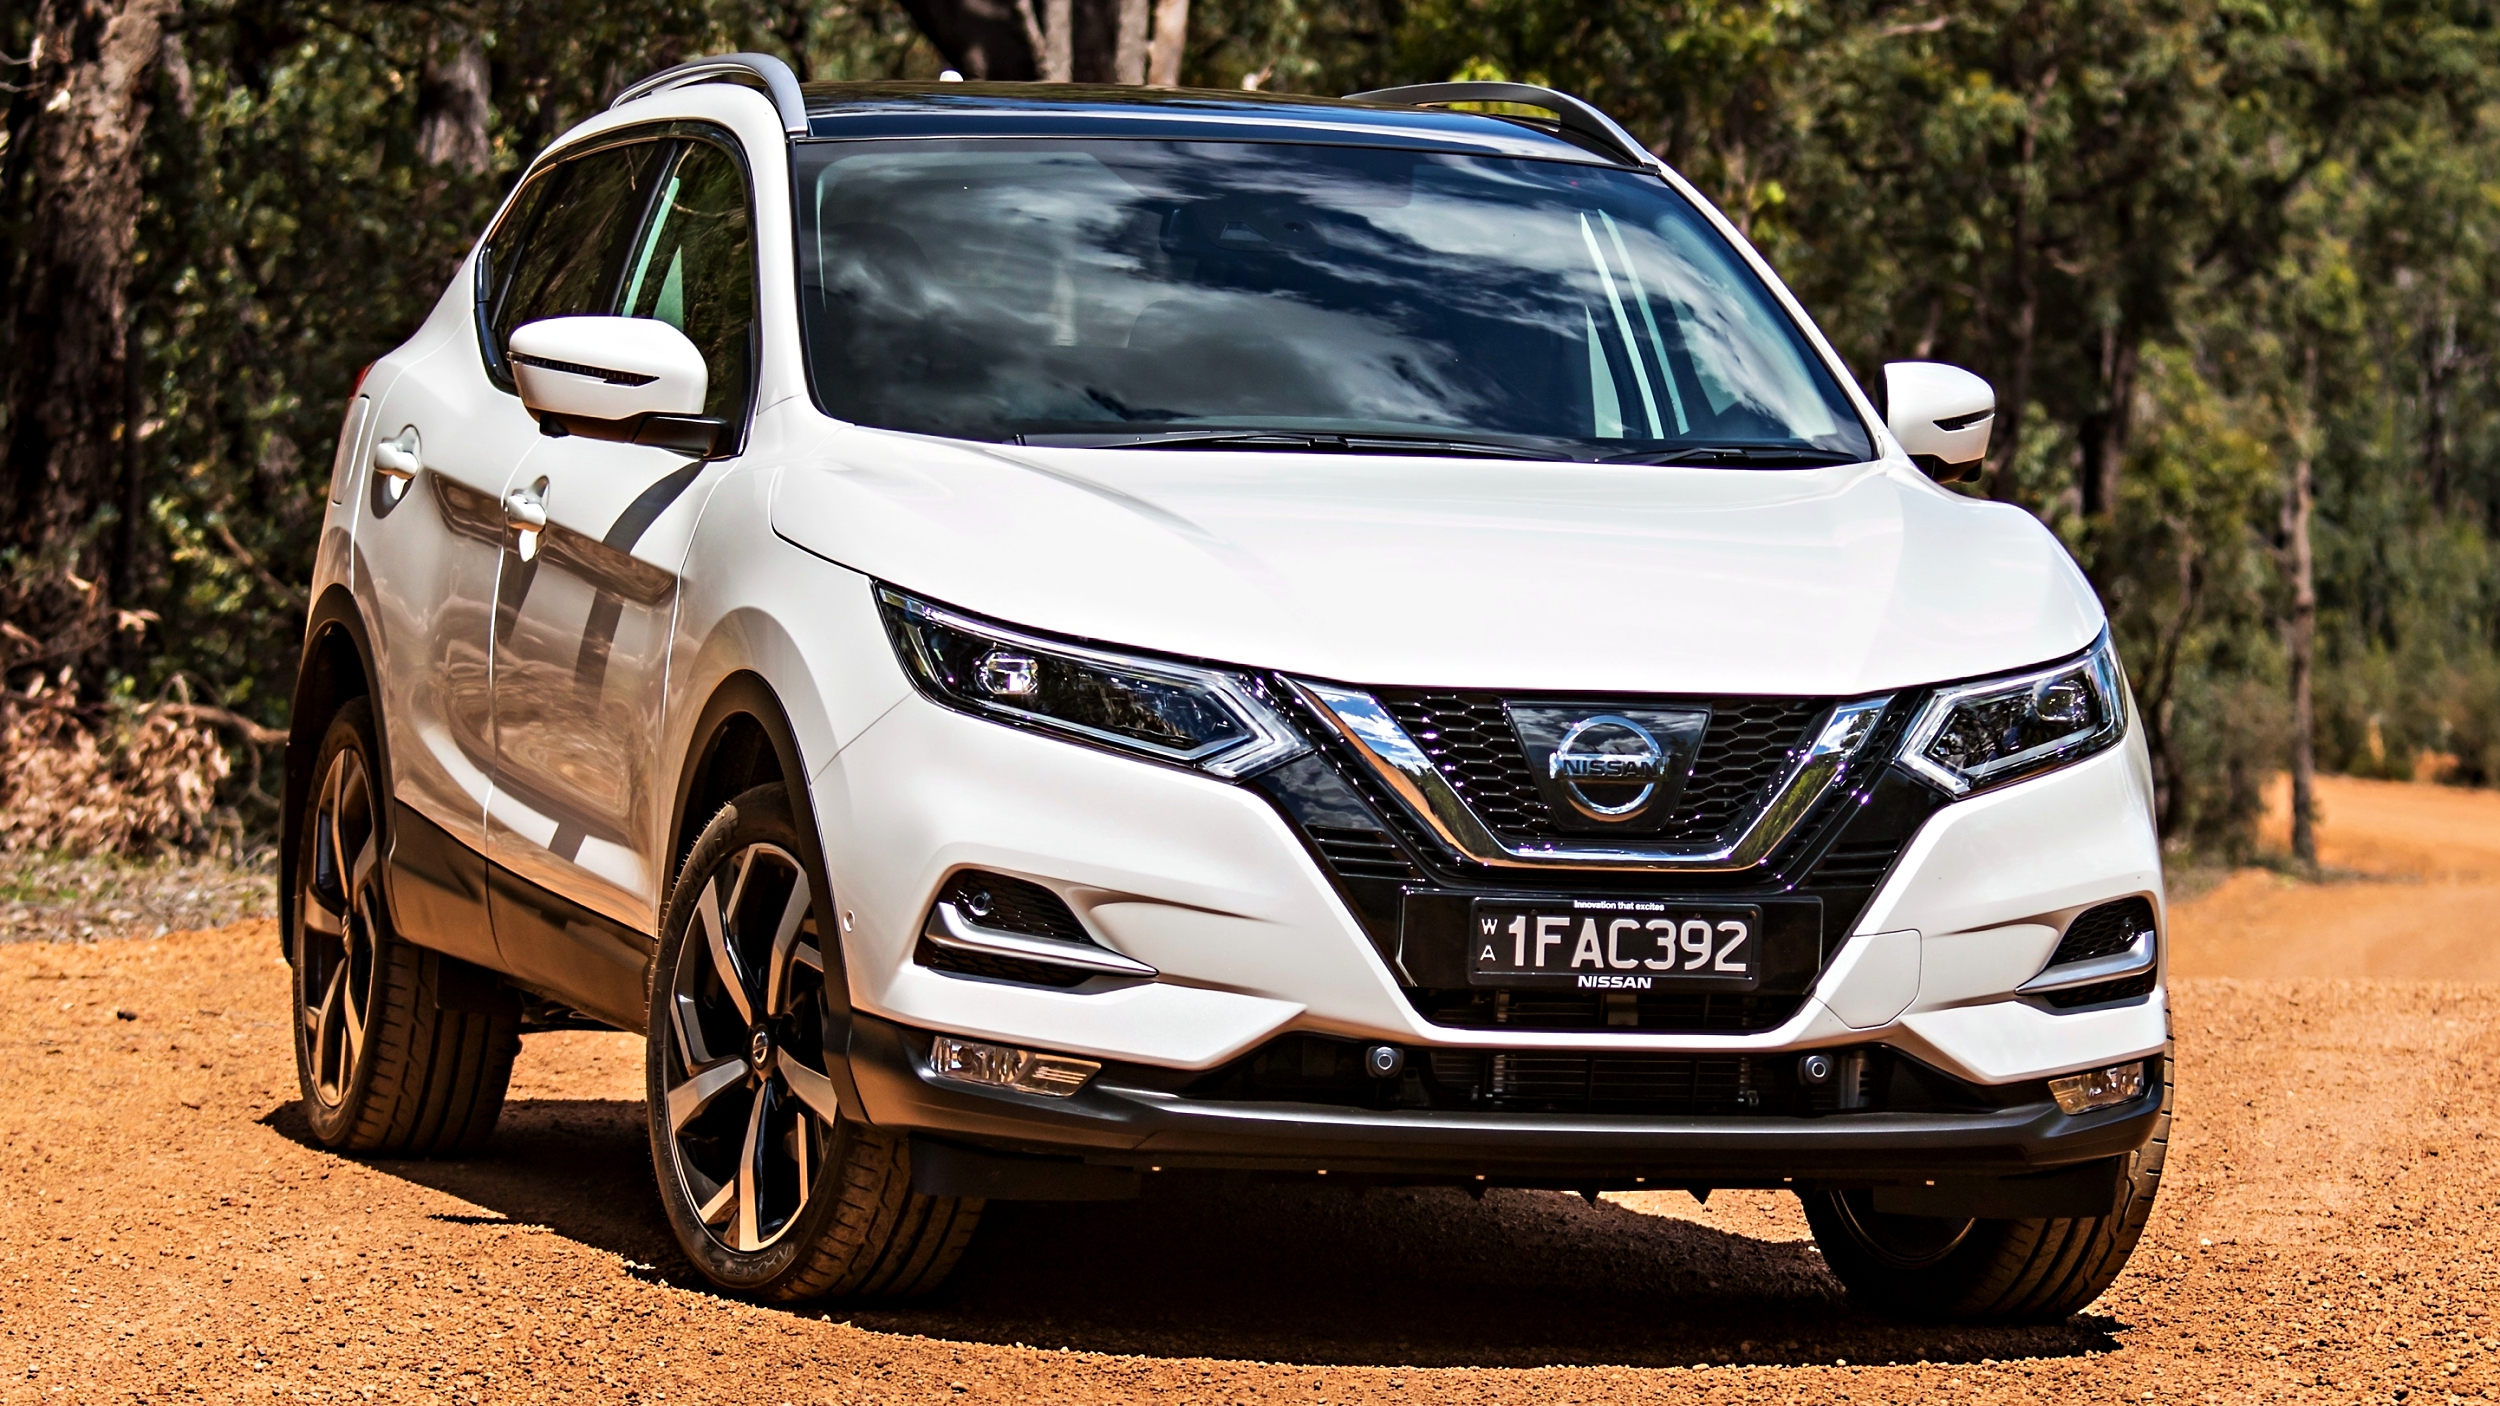 News - 2020 Nissan Qashqai To Feature 2 Electrified ...